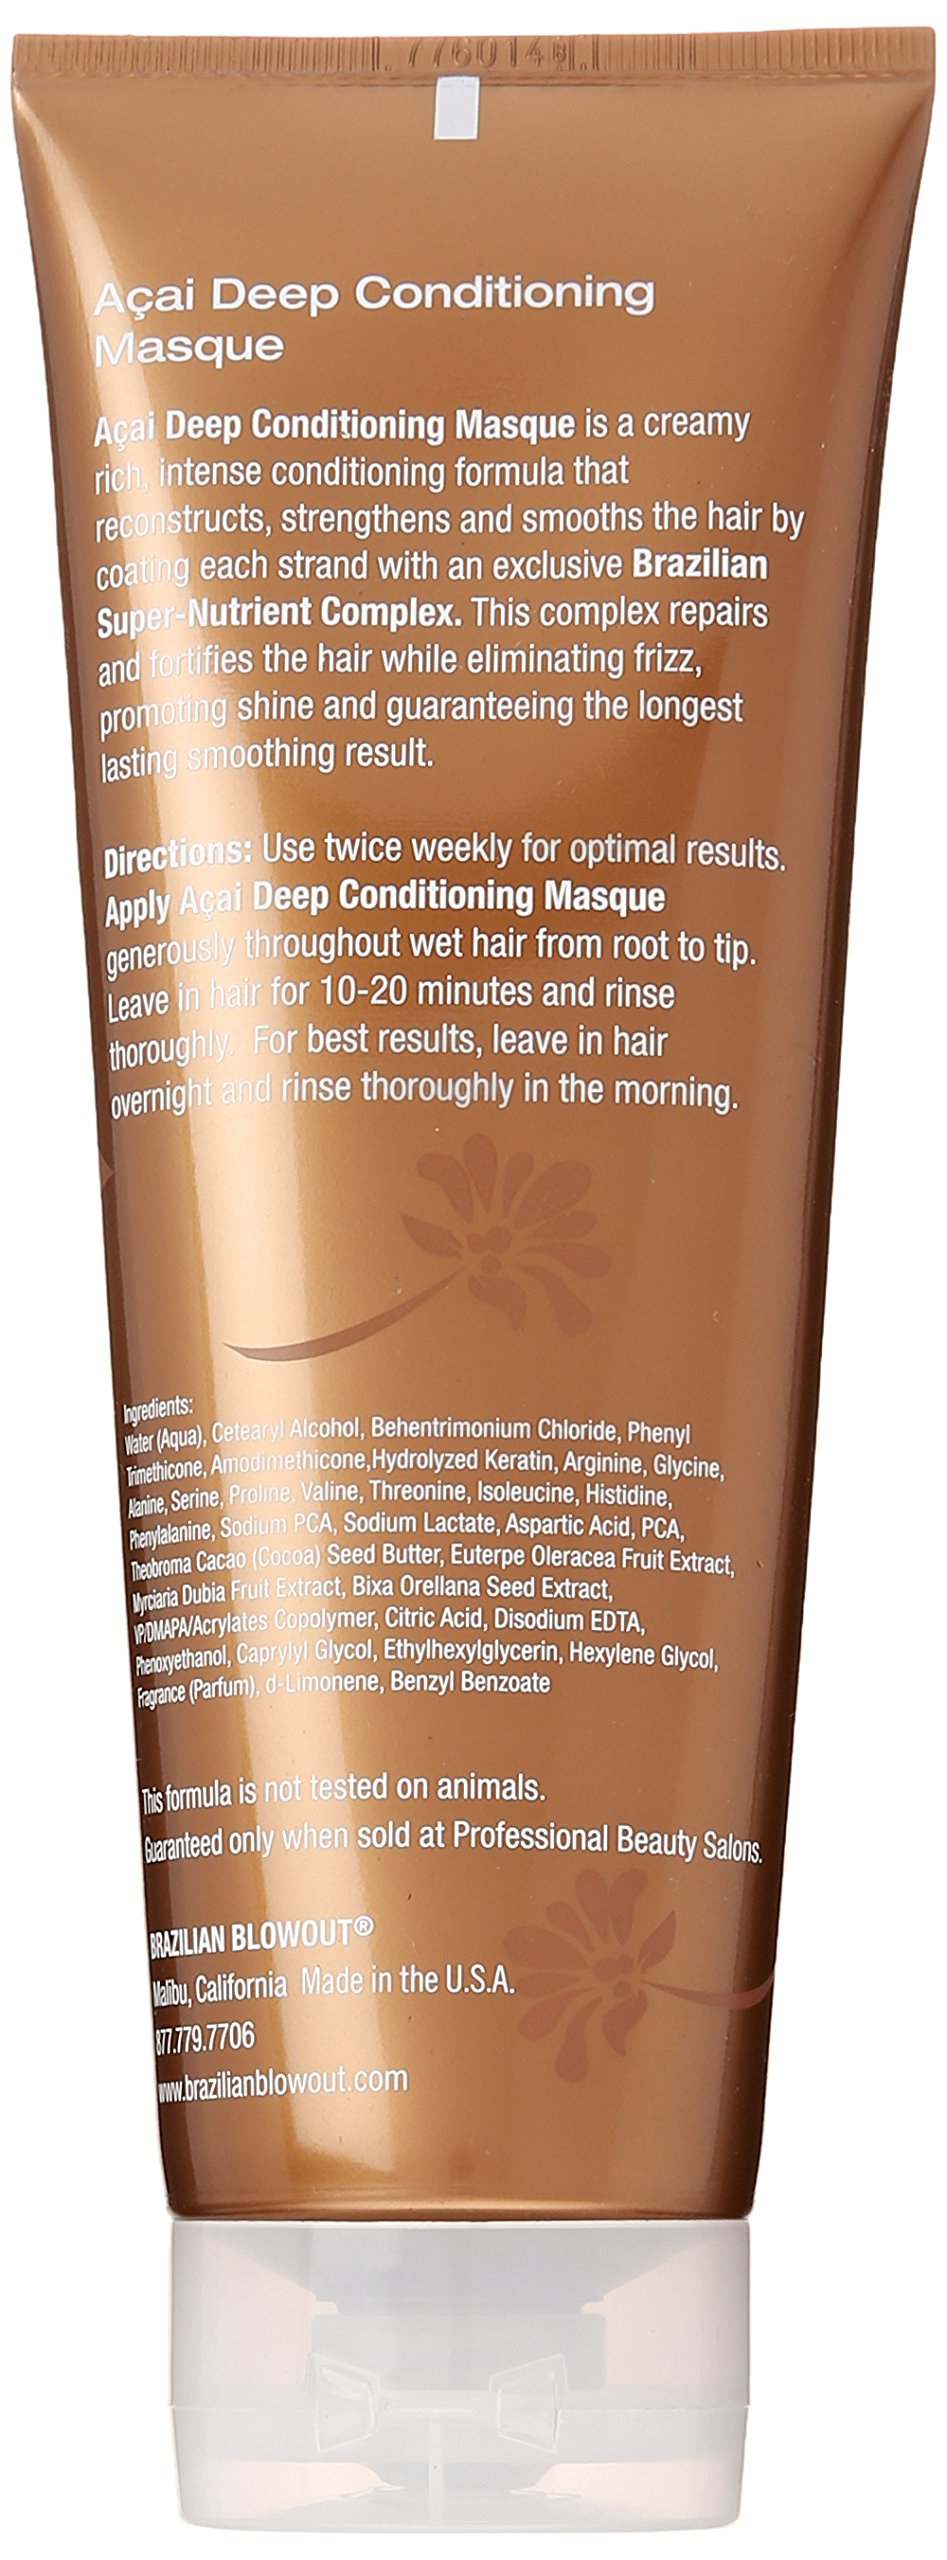 Brazilian Blowout Acai Deep Conditioning Masque for Unisex, 8 Ounce